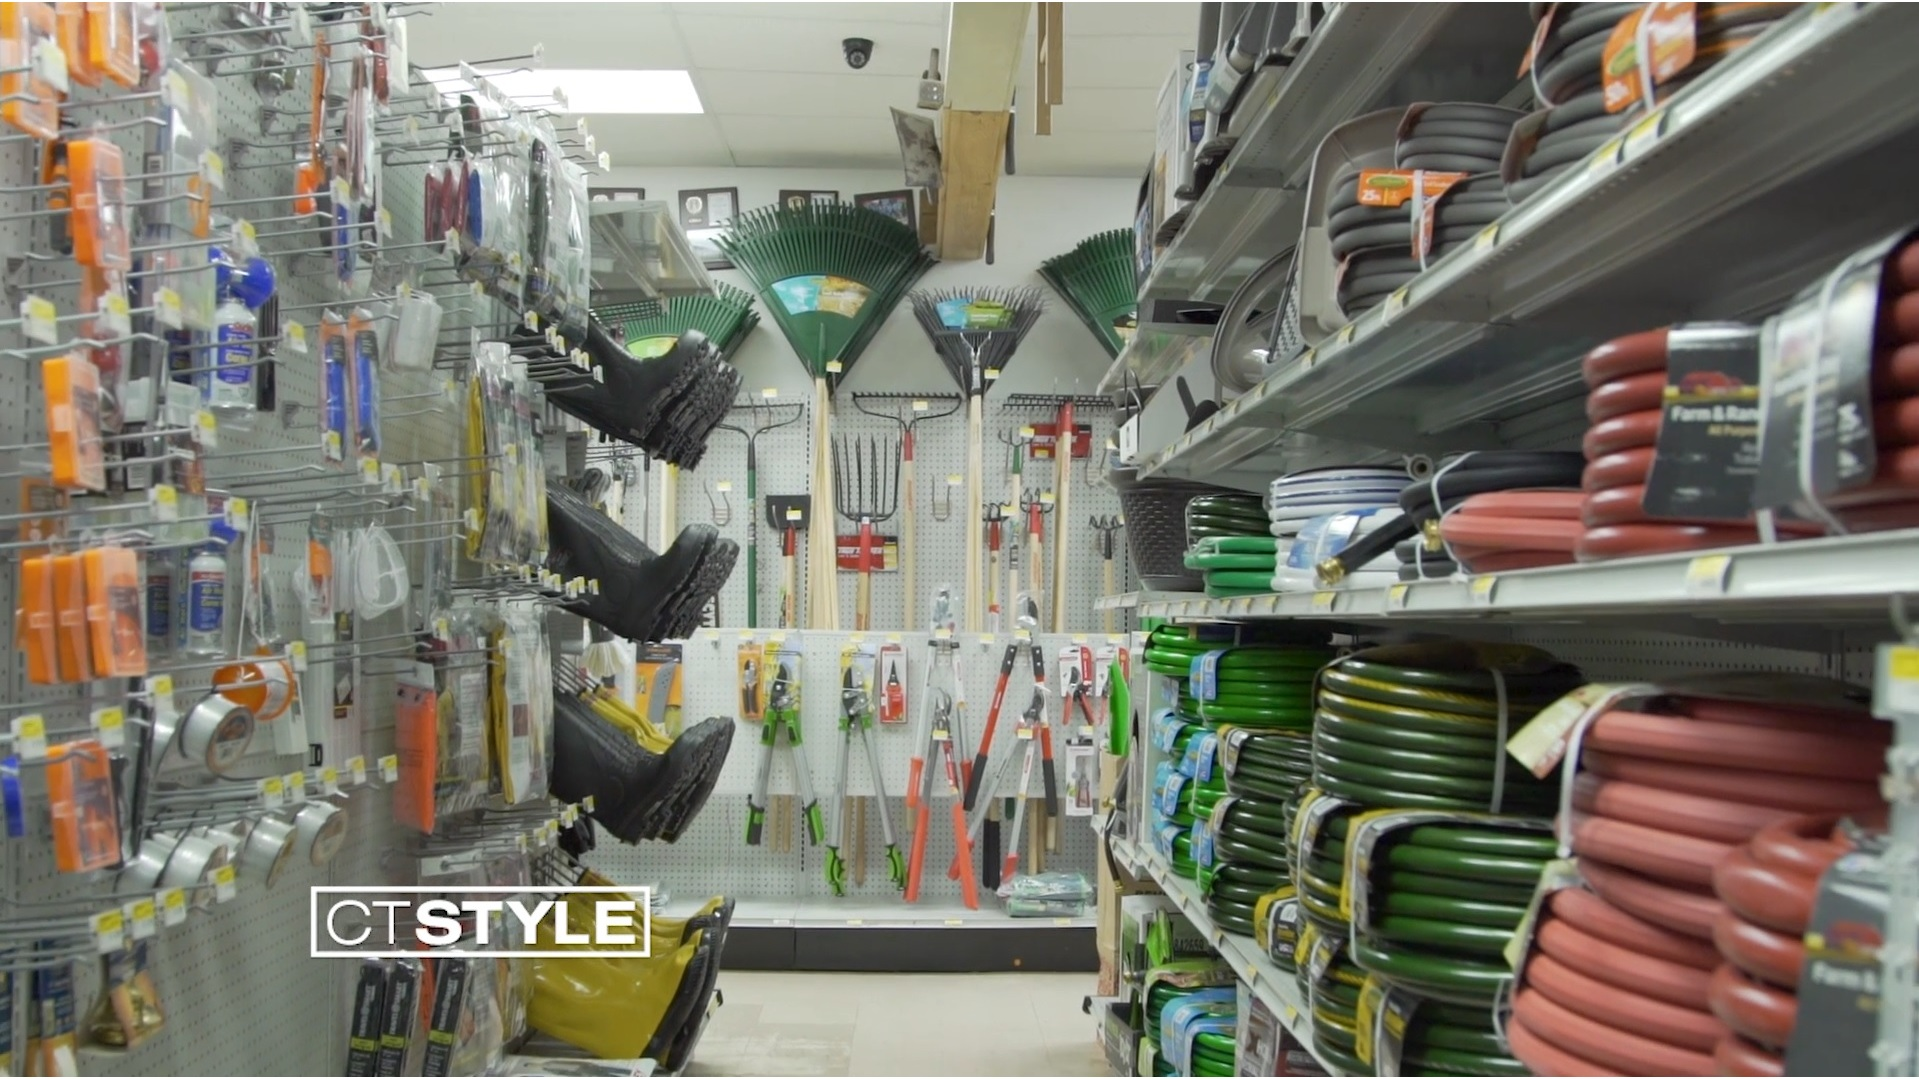 Over 40 Years of Helping for Home Projects: Country Paint & Hardware in North Branford, CT